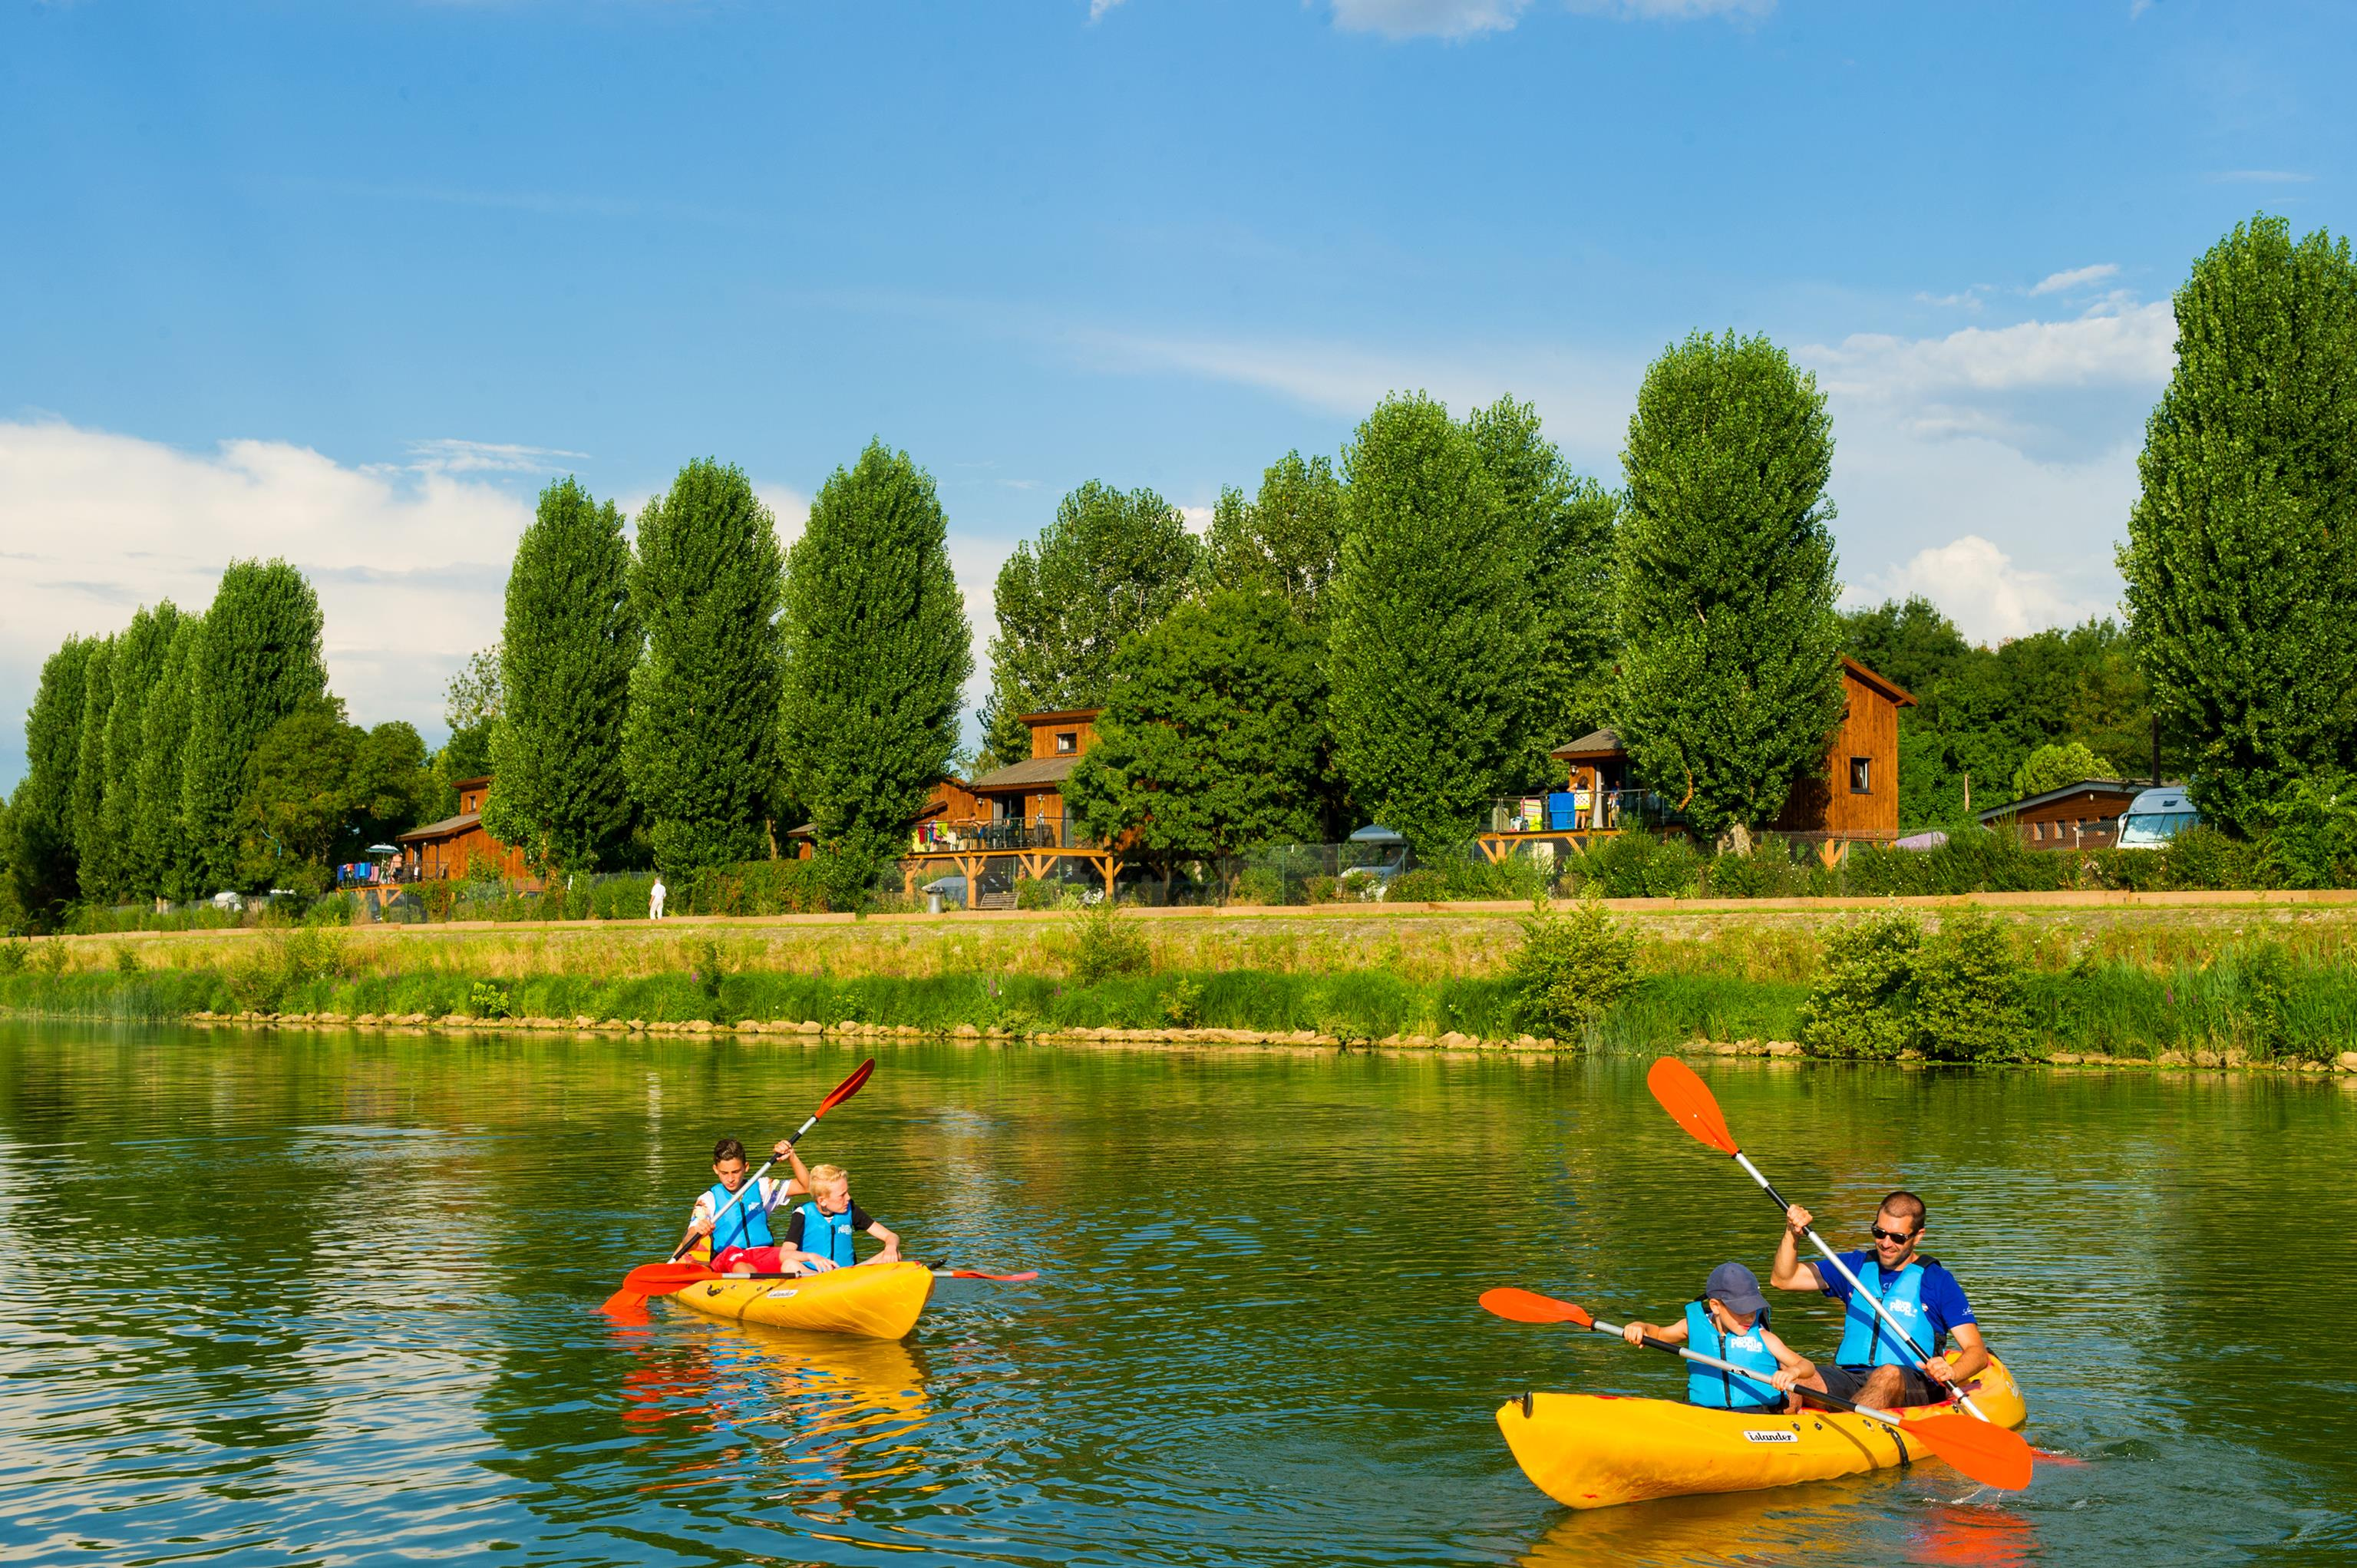 Region Camping Sites et Paysages KANOPÉE VILLAGE - TREVOUX